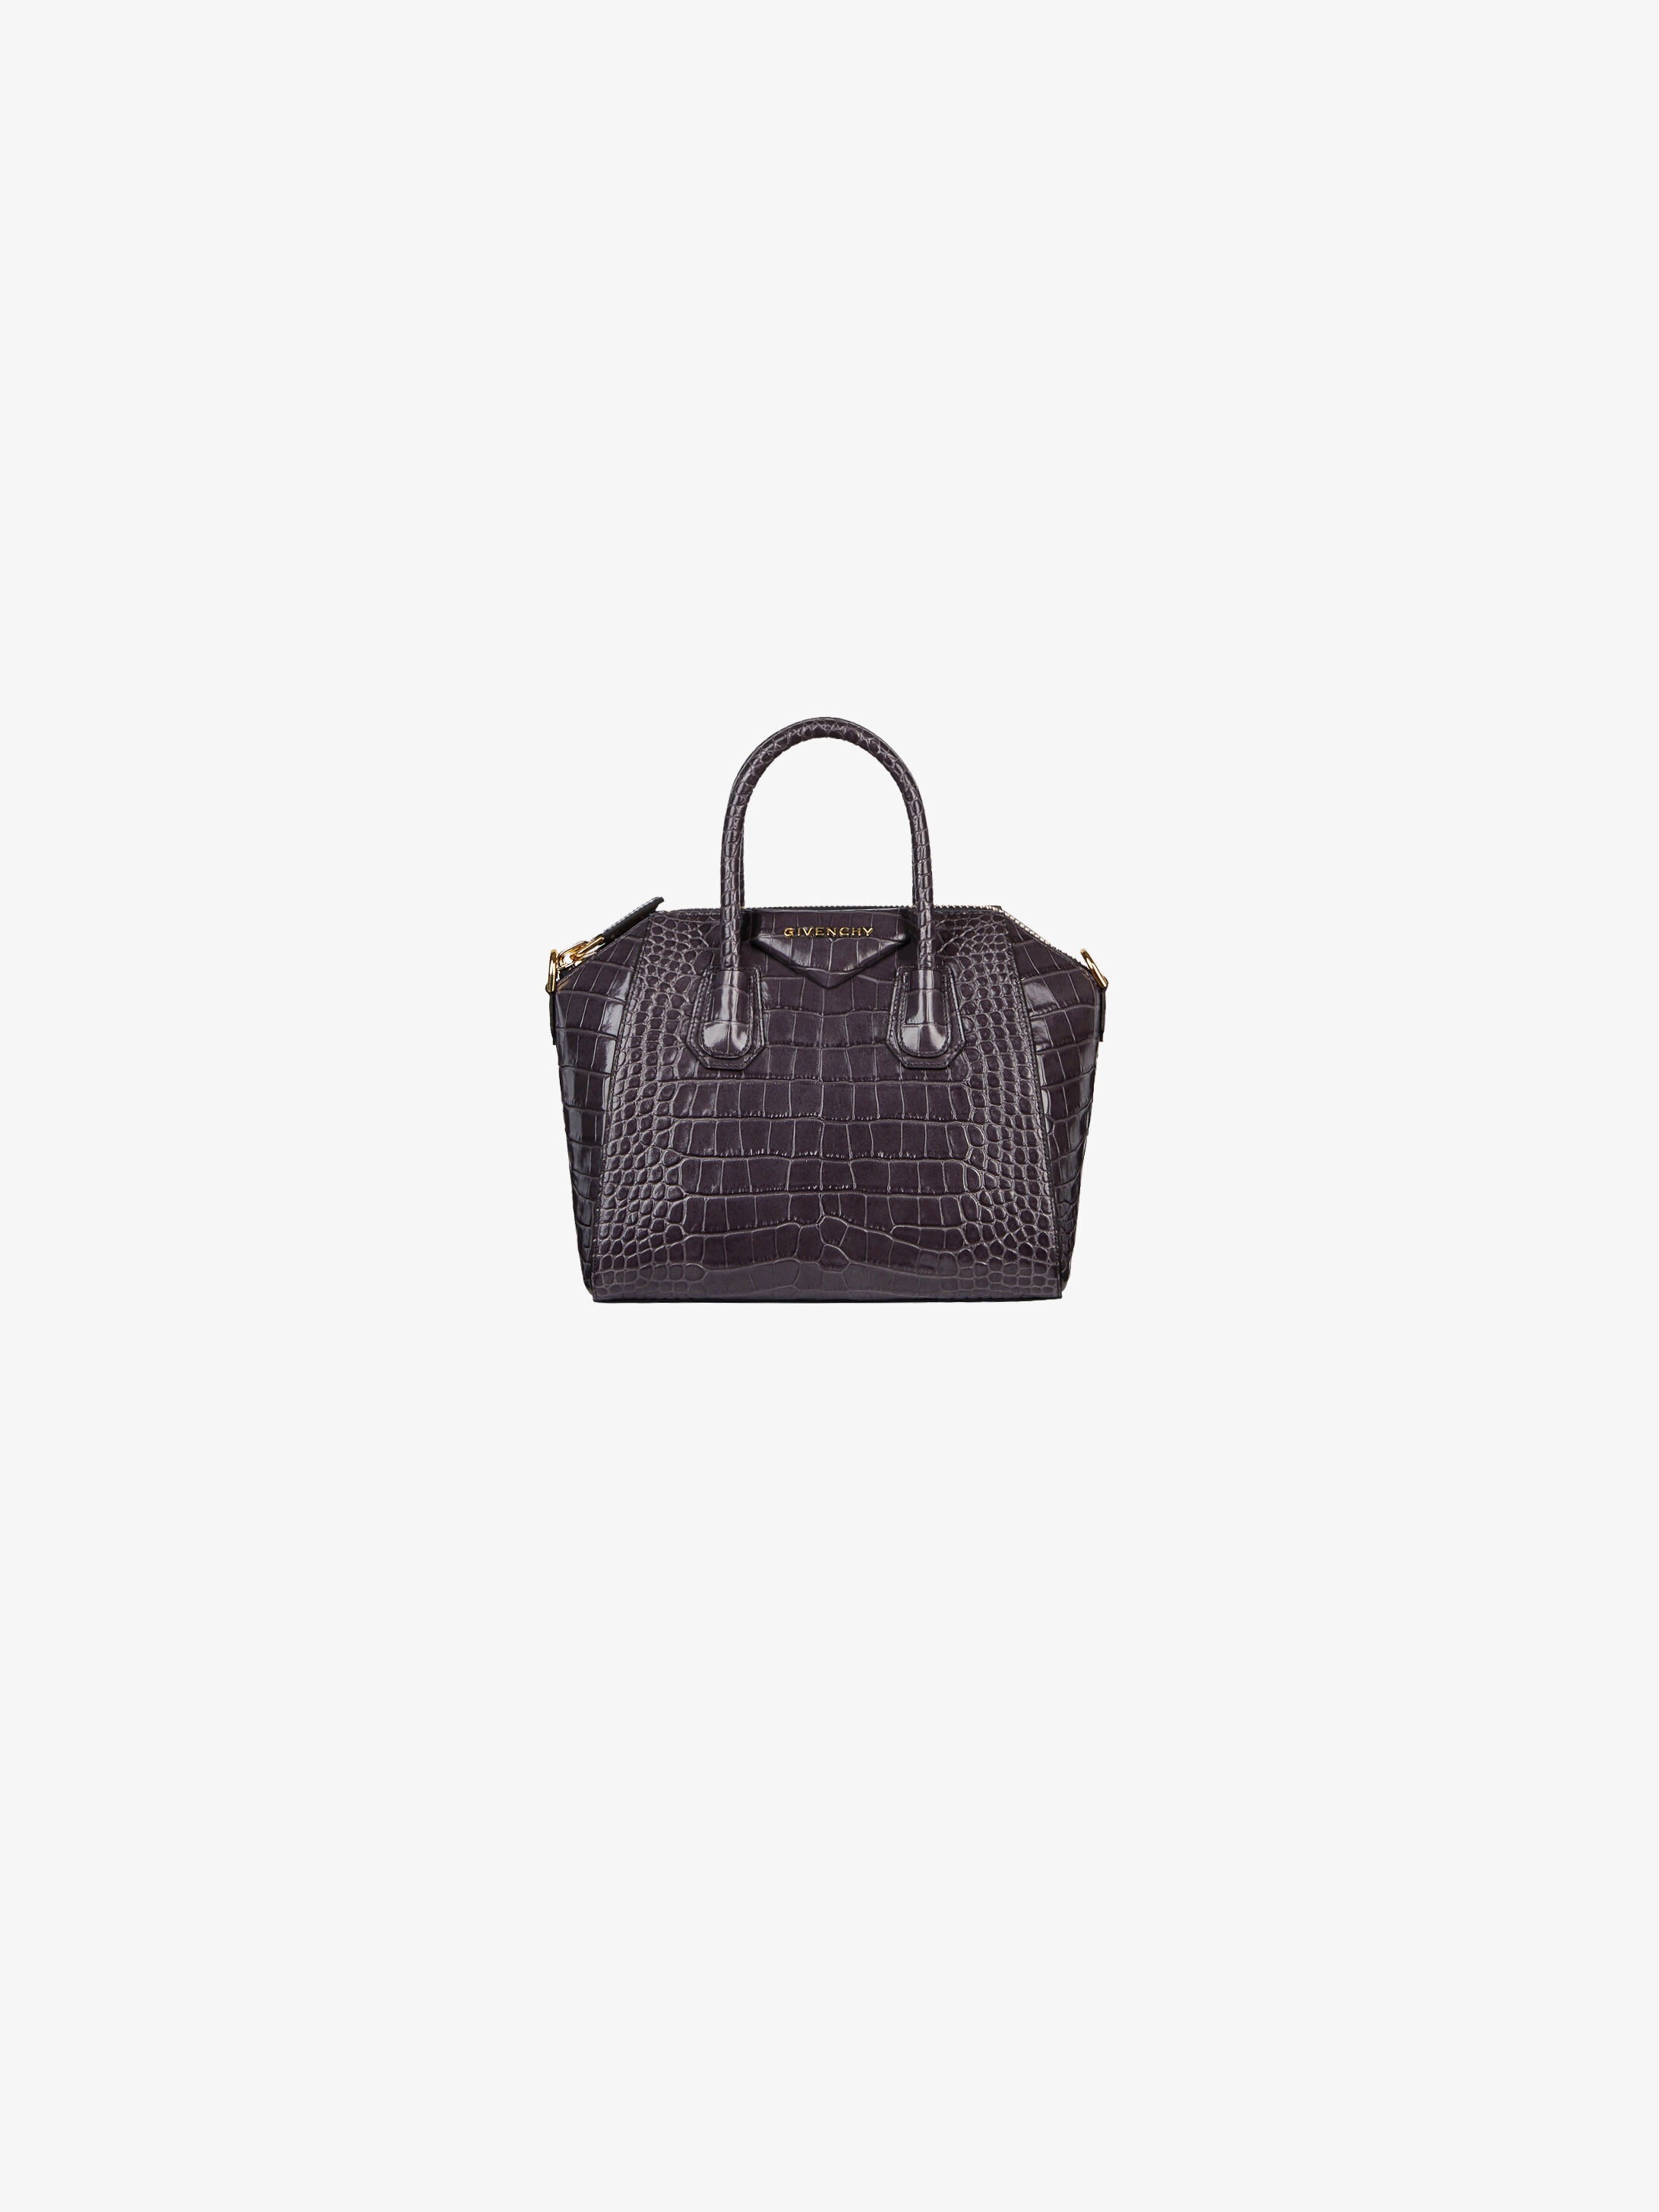 Handbags By GivenchyGivenchy Women's Paris Collection wXuPZlOikT